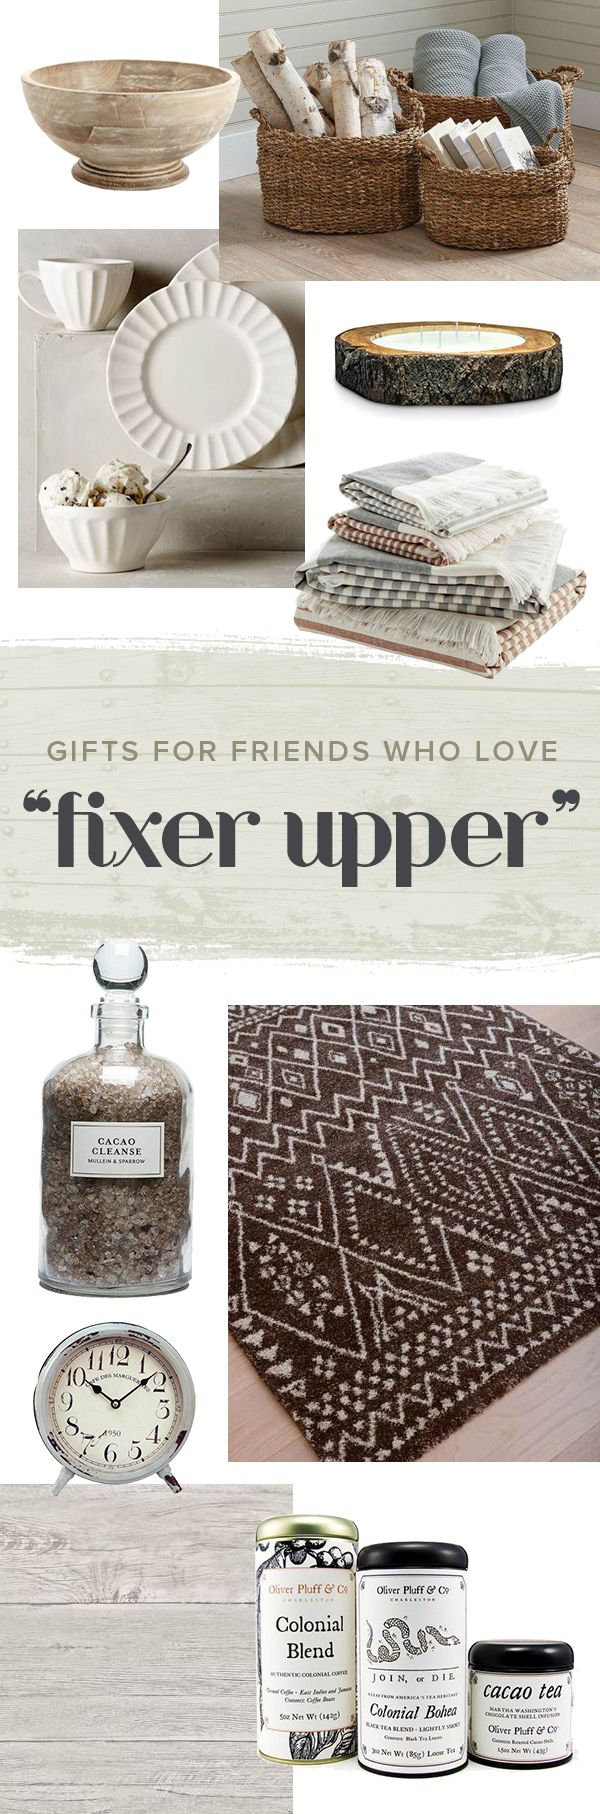 the 27 best holiday gifts for your friends who love fixer upper christmas shopping listhome decor stylesshopping - Home Decorating Styles List